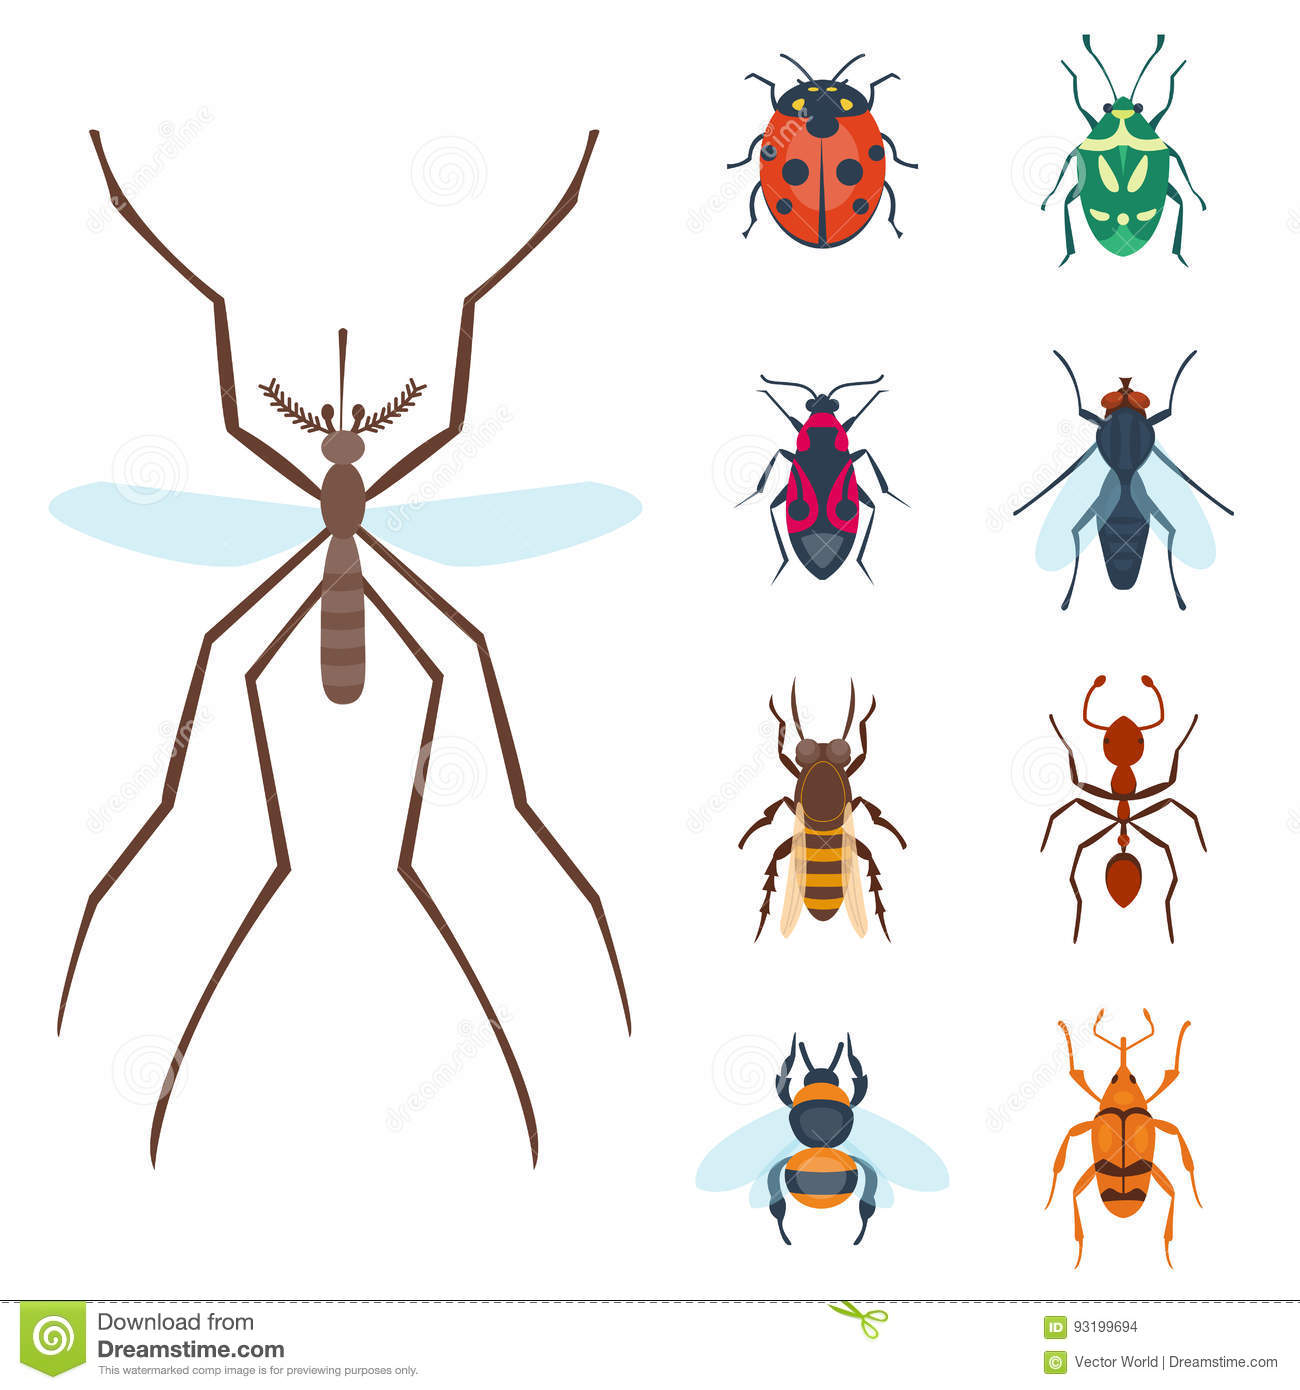 Colorful insects icons isolated wildlife wing detail summer bugs colorful insects icons isolated wildlife wing detail summer bugs wild vector illustration biocorpaavc Gallery